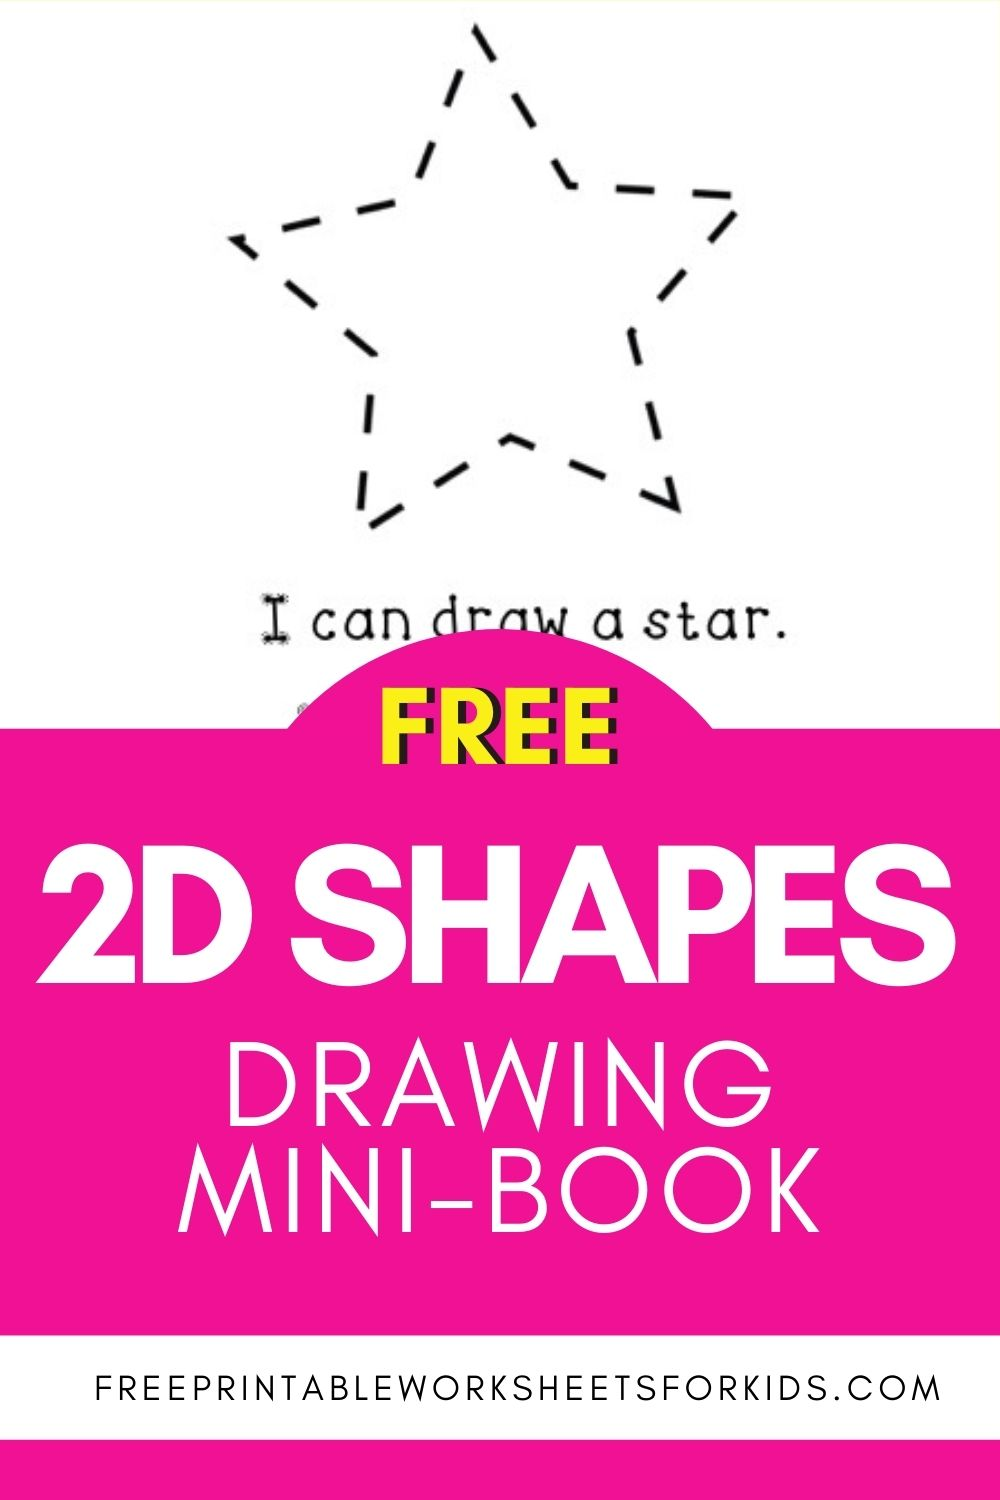 drawing 2d shapes mini book to practice tracing shapes